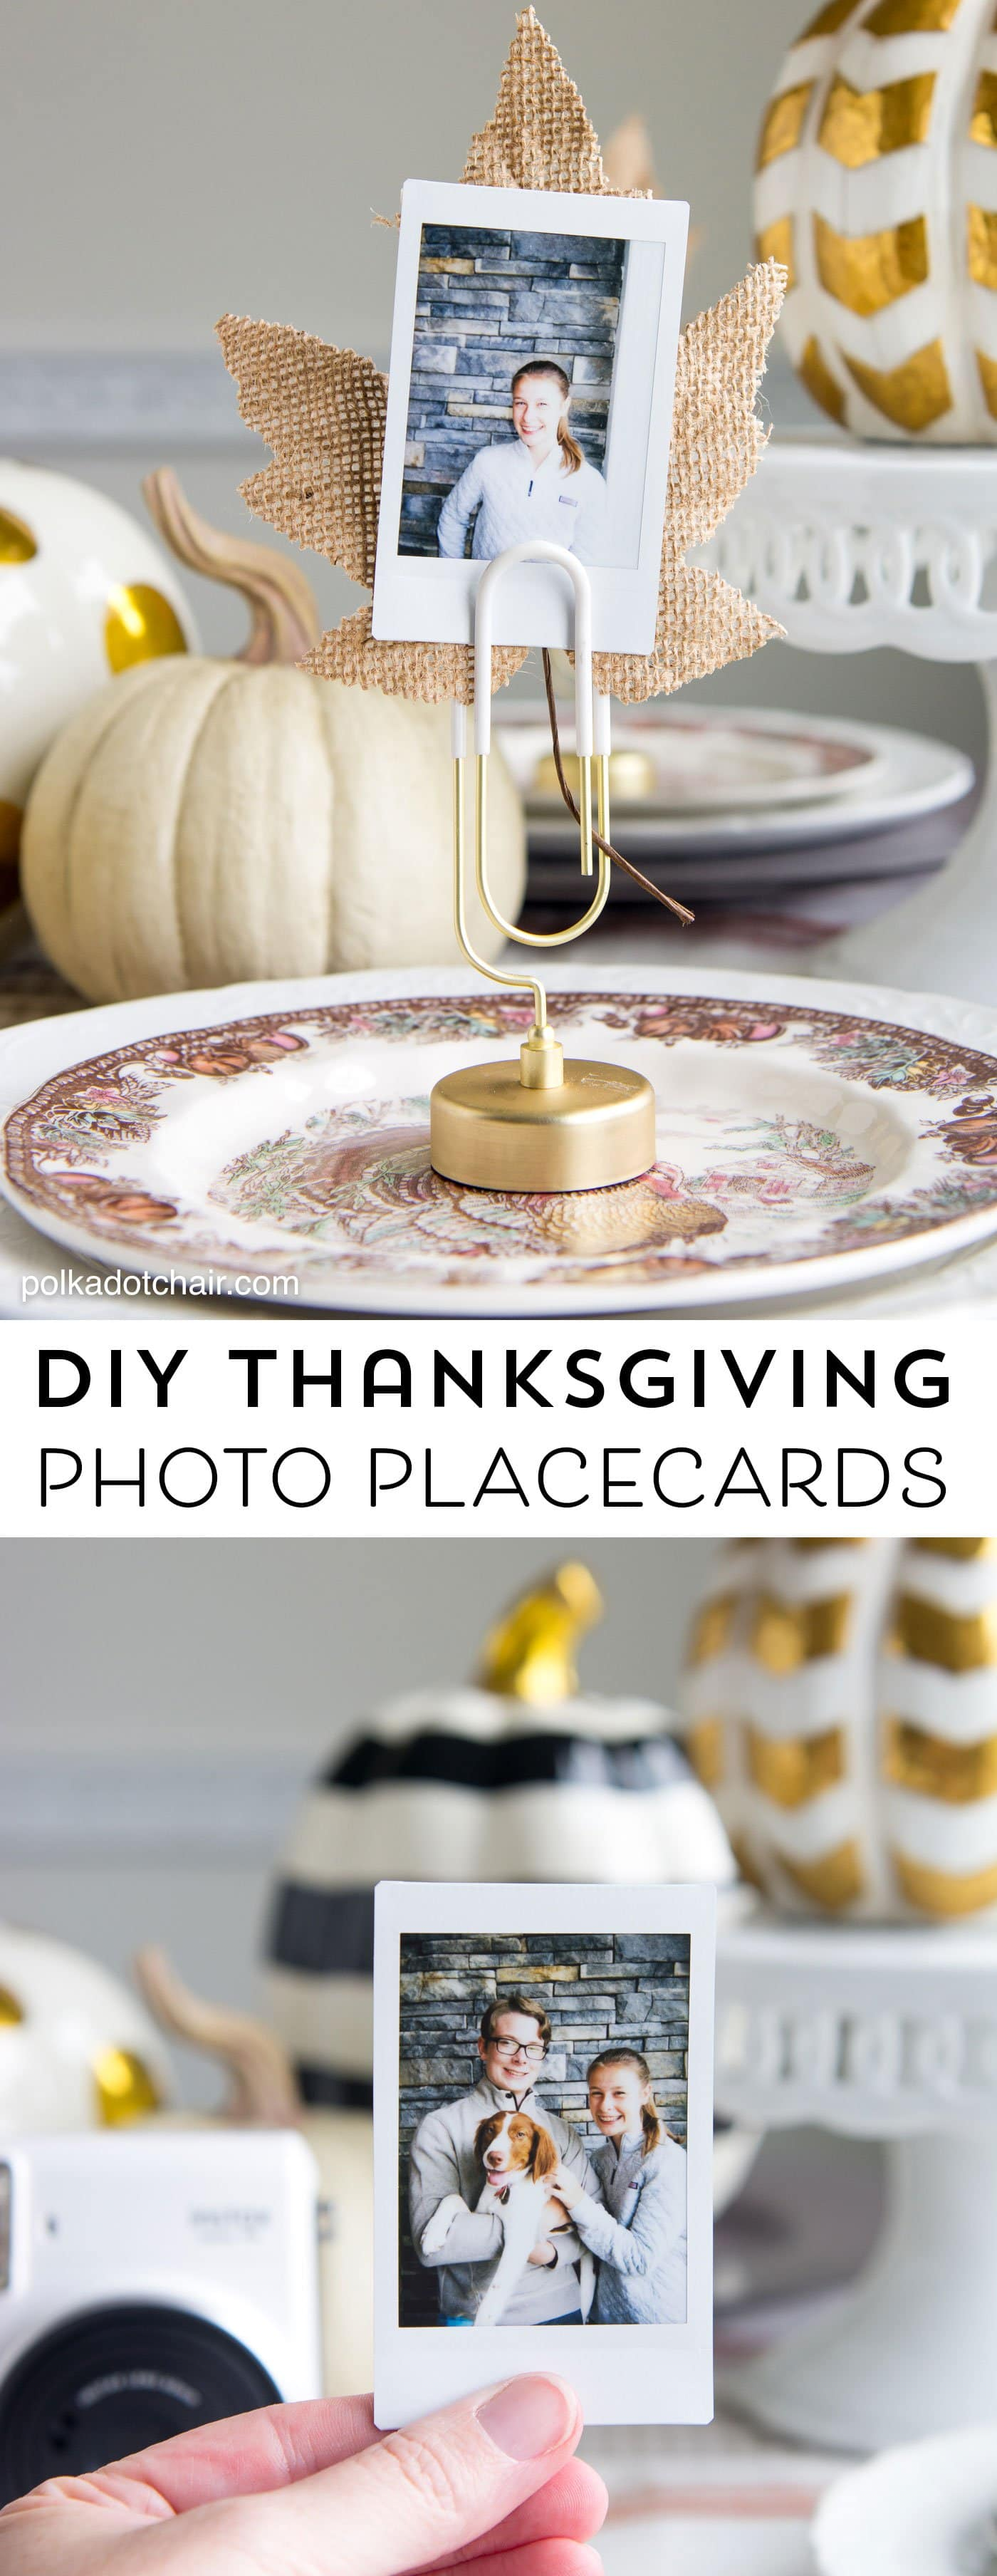 DIY Thanksgiving Place Cards Idea  Visa Gift Card